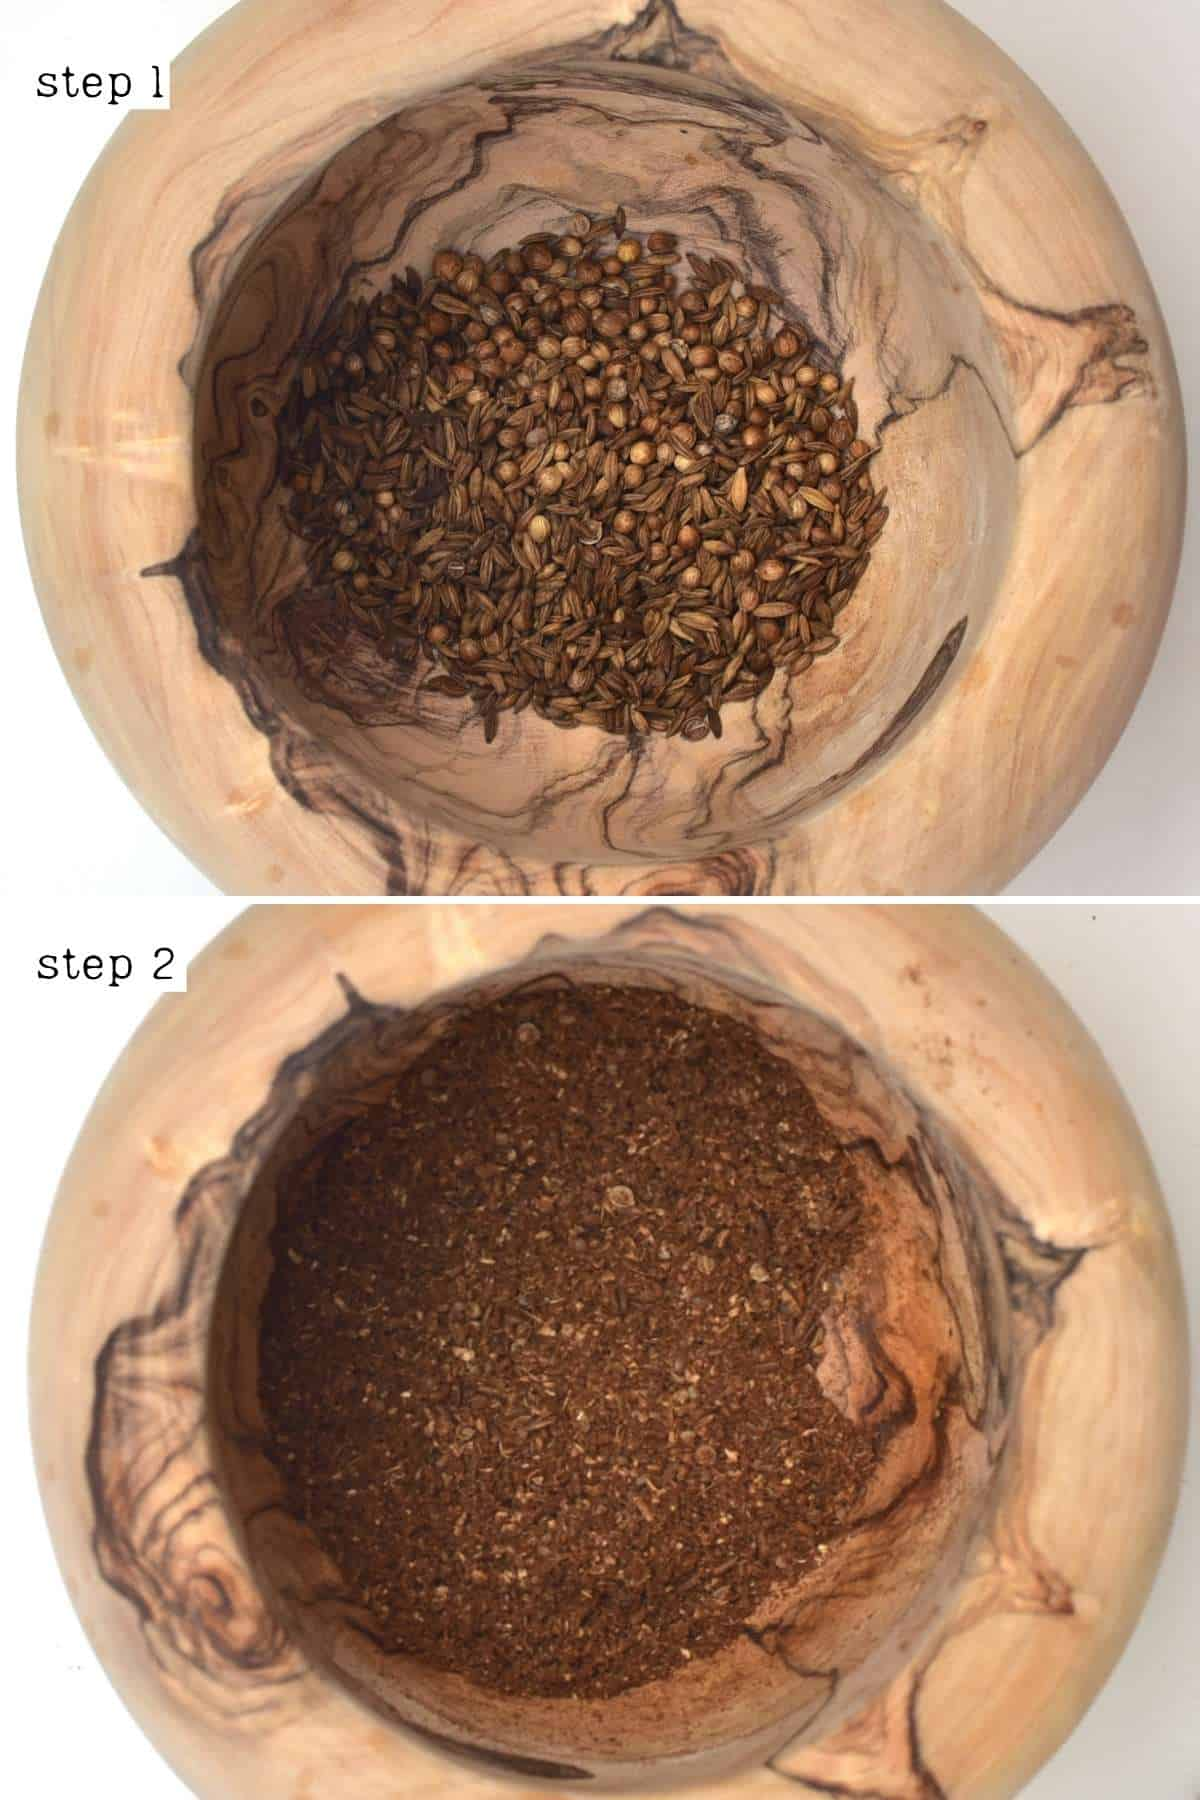 Grinding spices in a mortar